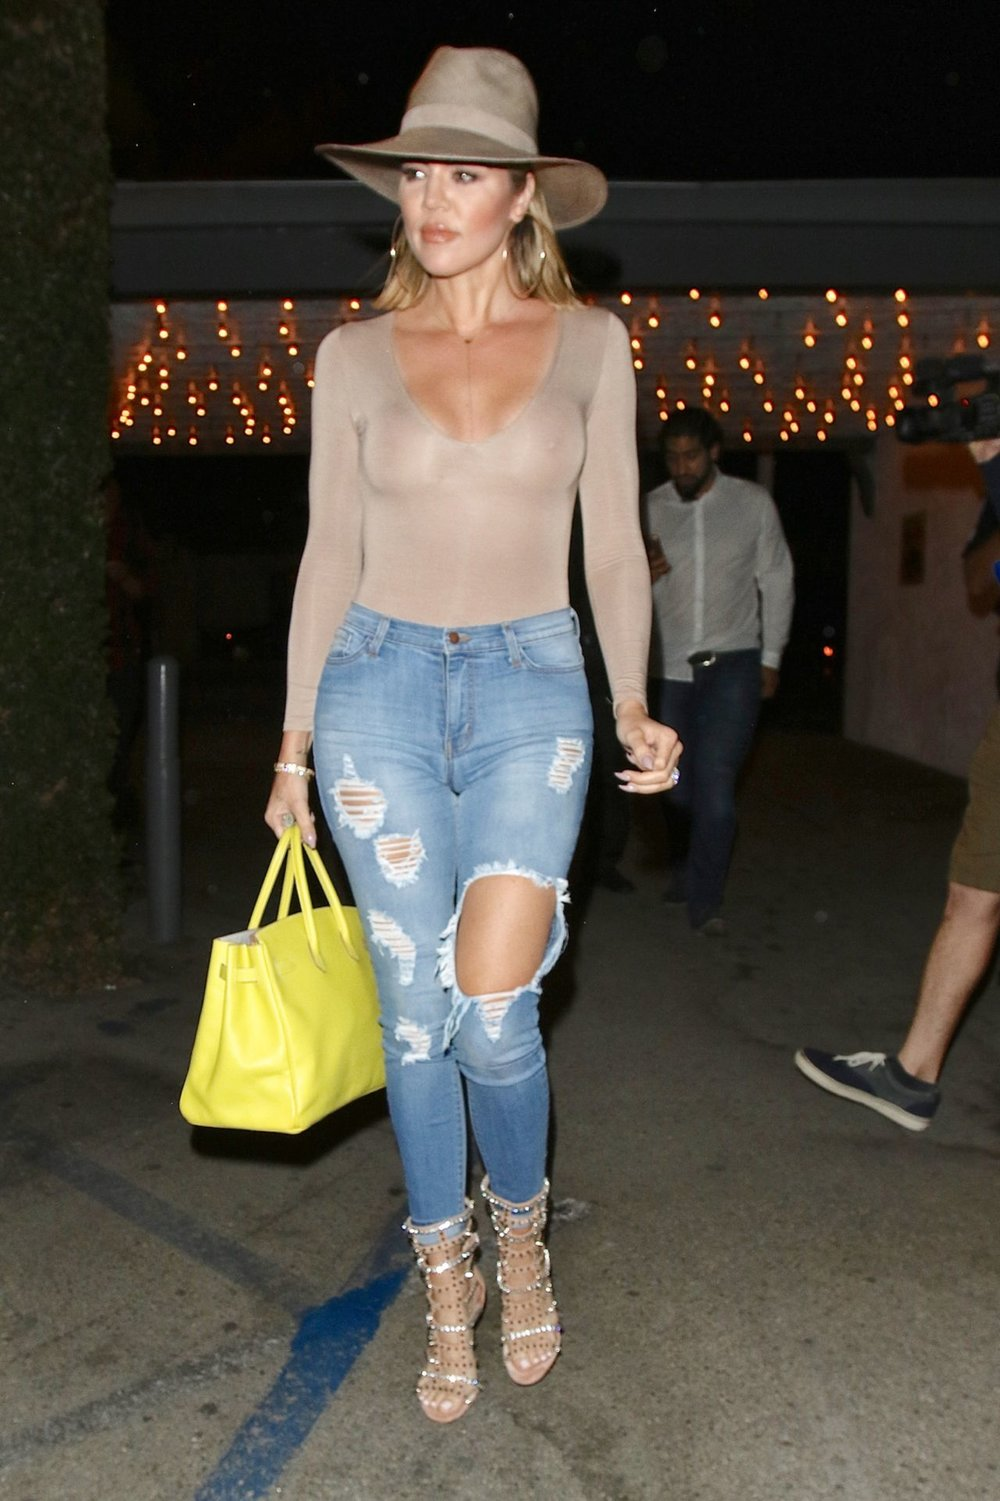 khloe-kardashian-in-ripped-jeans-leaving-casa-vega-restaurant-in-sherman-oaks-7-16-2016-4.jpg